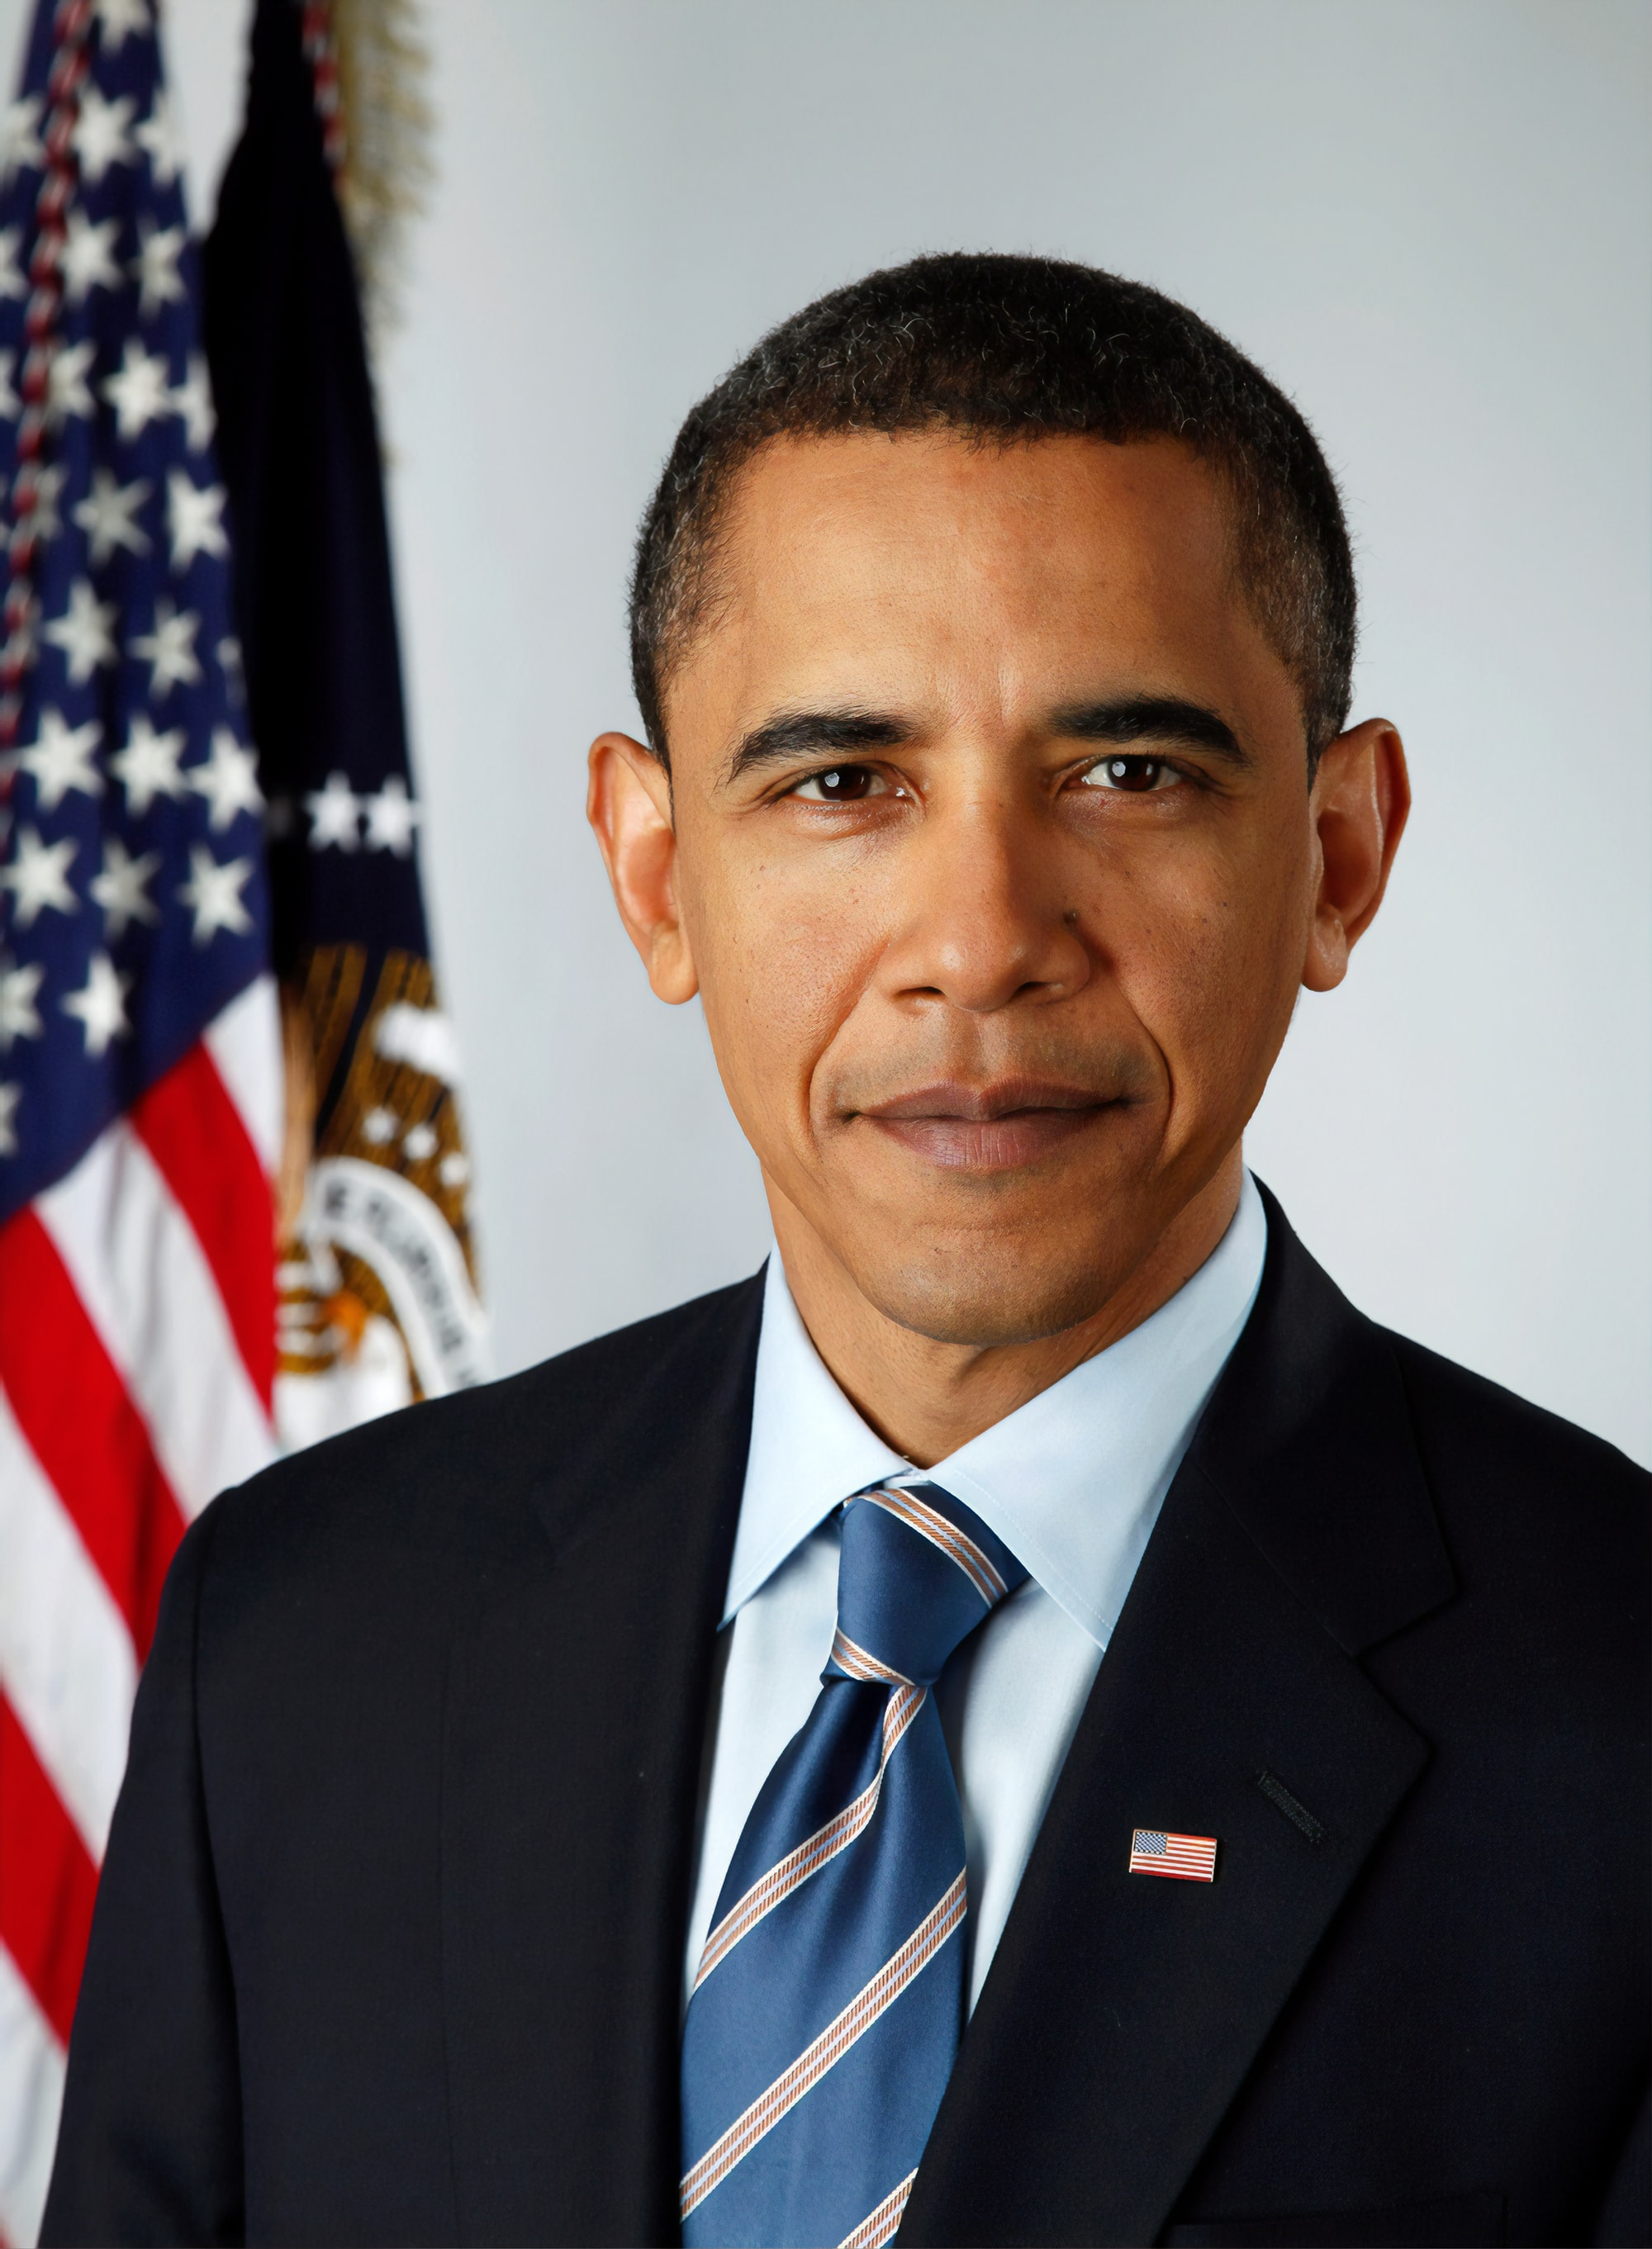 Official portrait of President-elect Barack Obama. Digital photograph by photographer Pete Souza, 2009. Library of Congress Prints & Photographs Division.   https://www.loc.gov/item/2010647151/